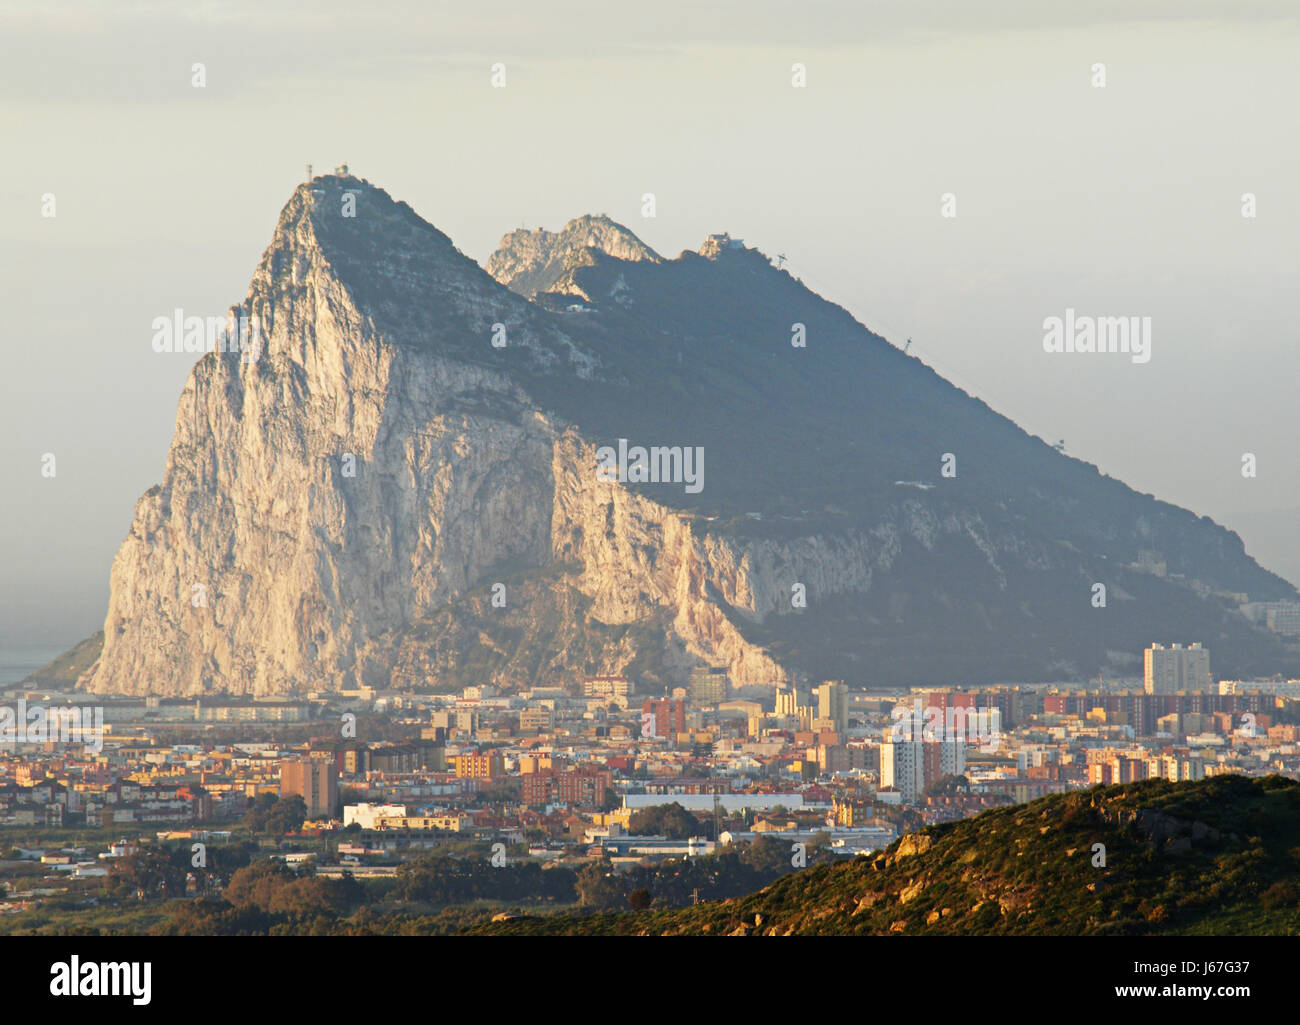 sunrise spain rock colony gibraltar beautiful beauteously nice city town - Stock Image